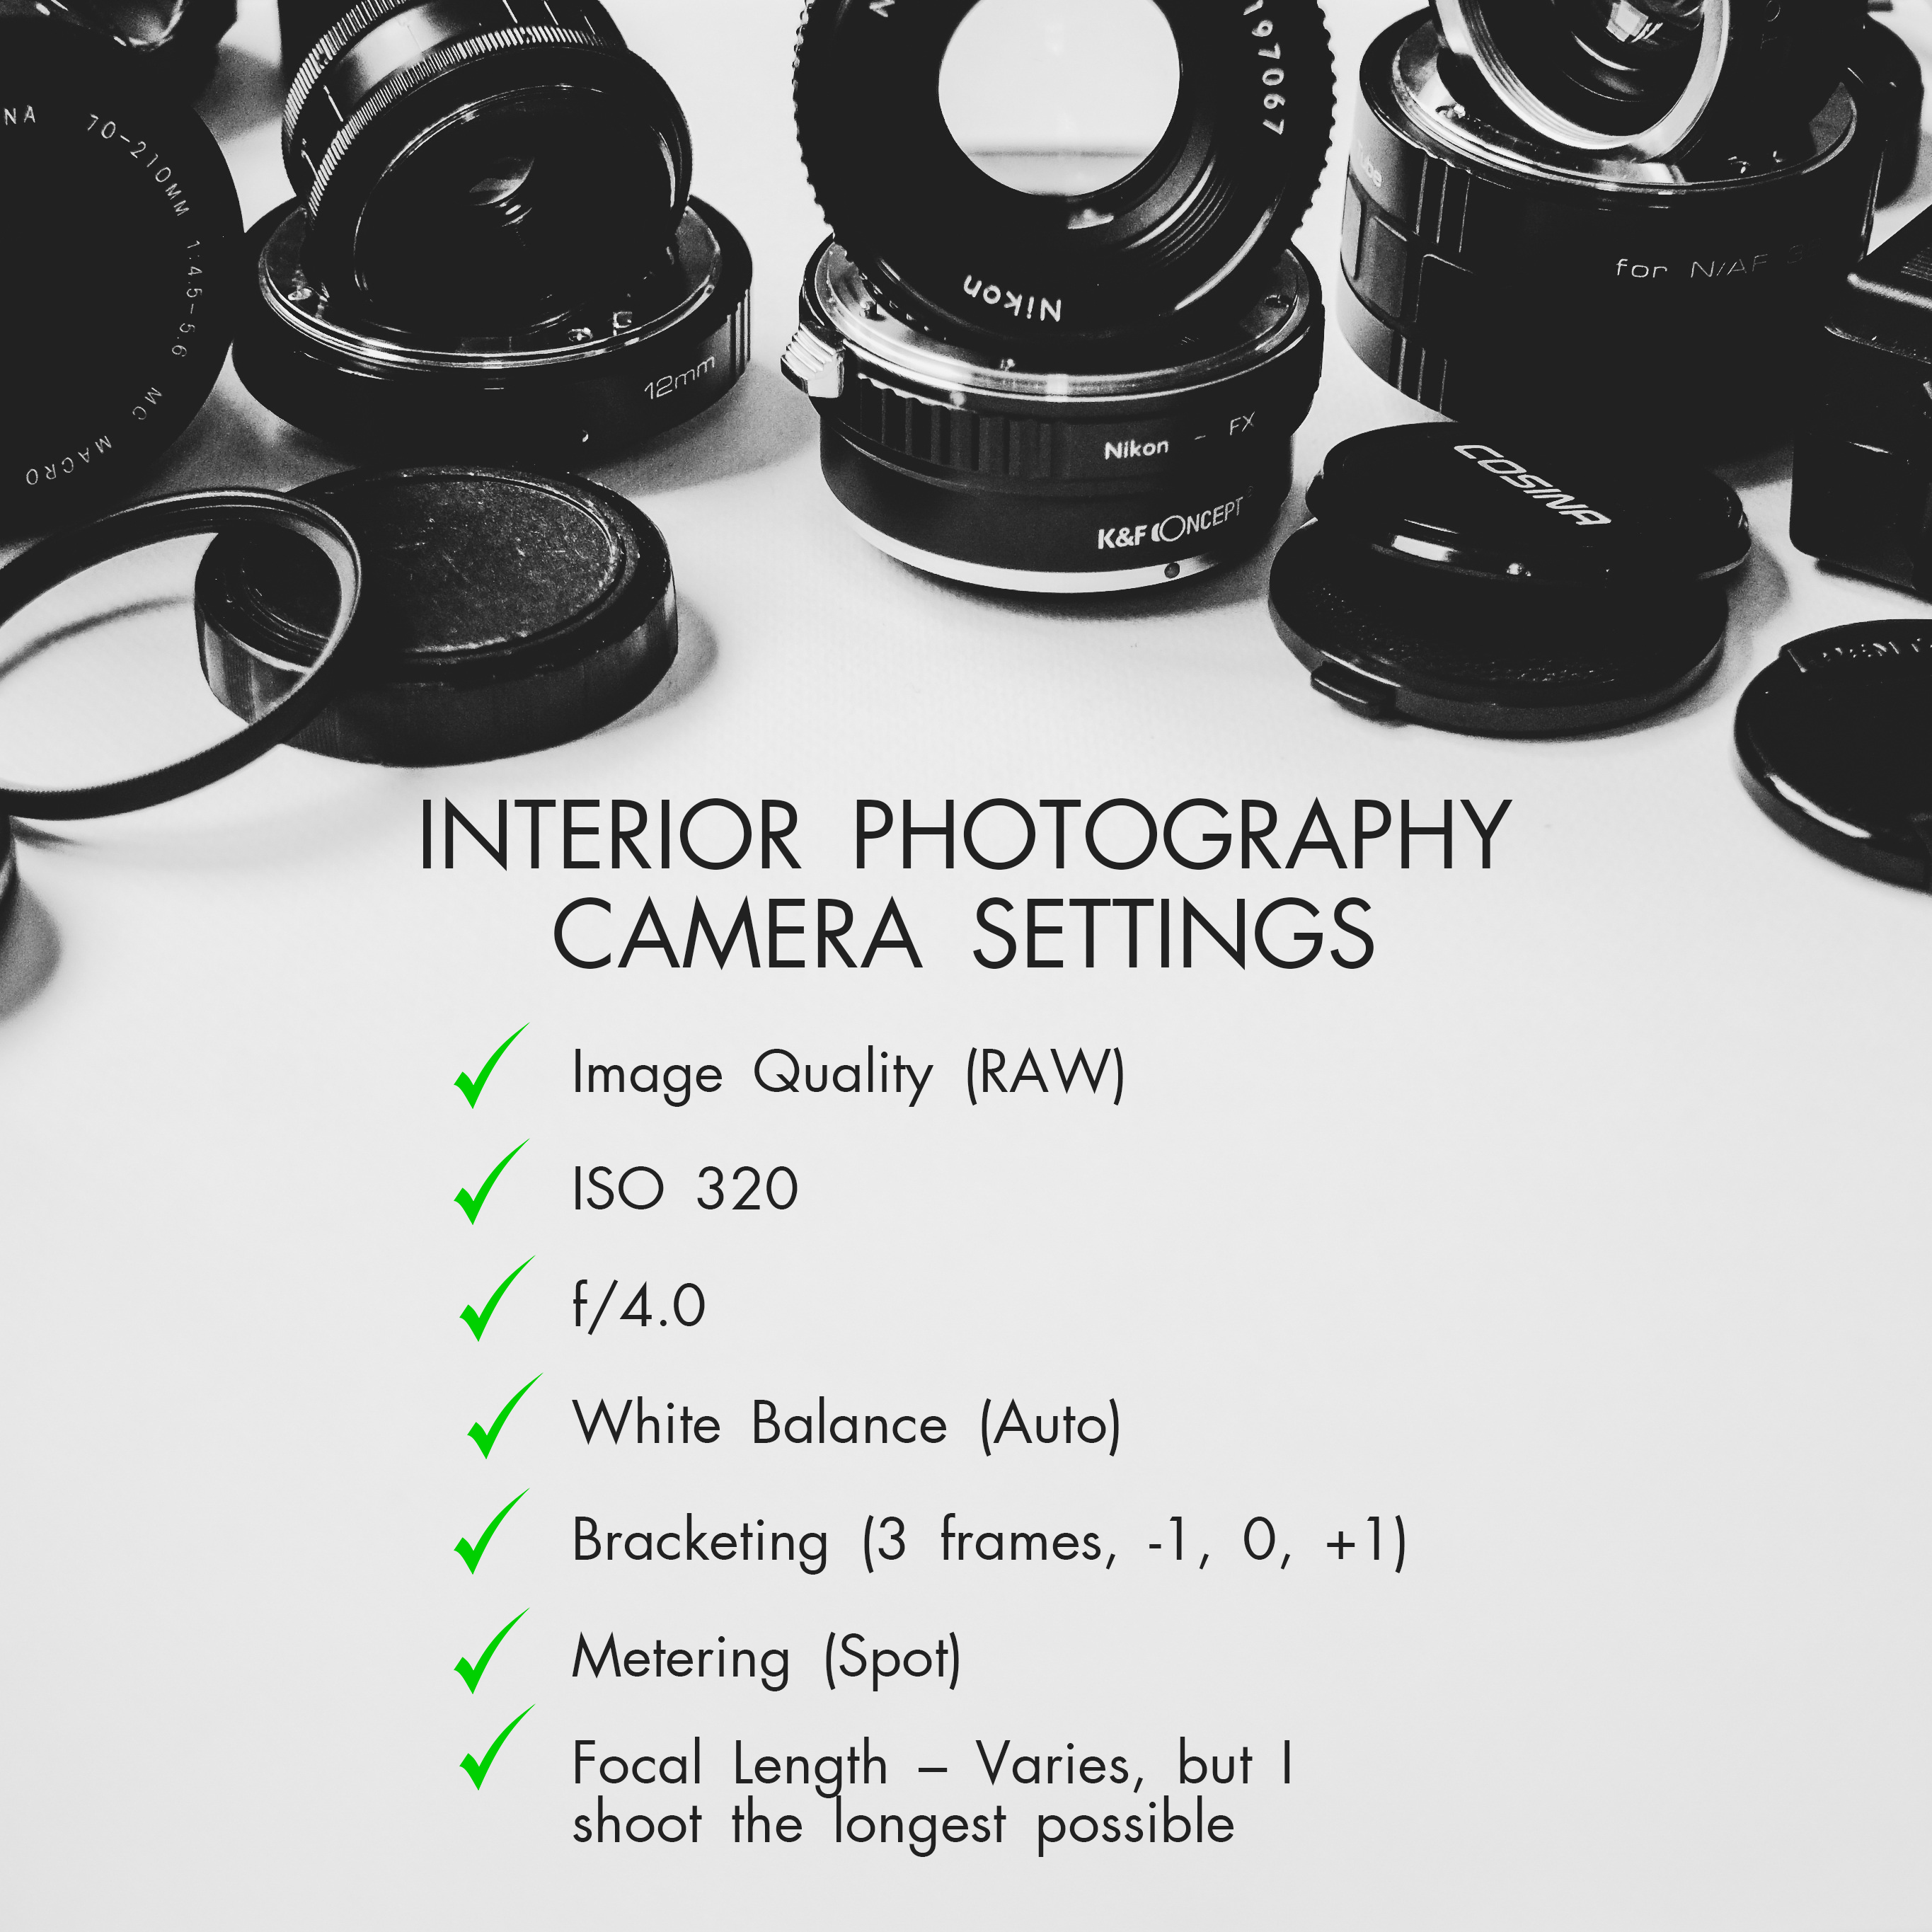 camera settings for real estate photography interior